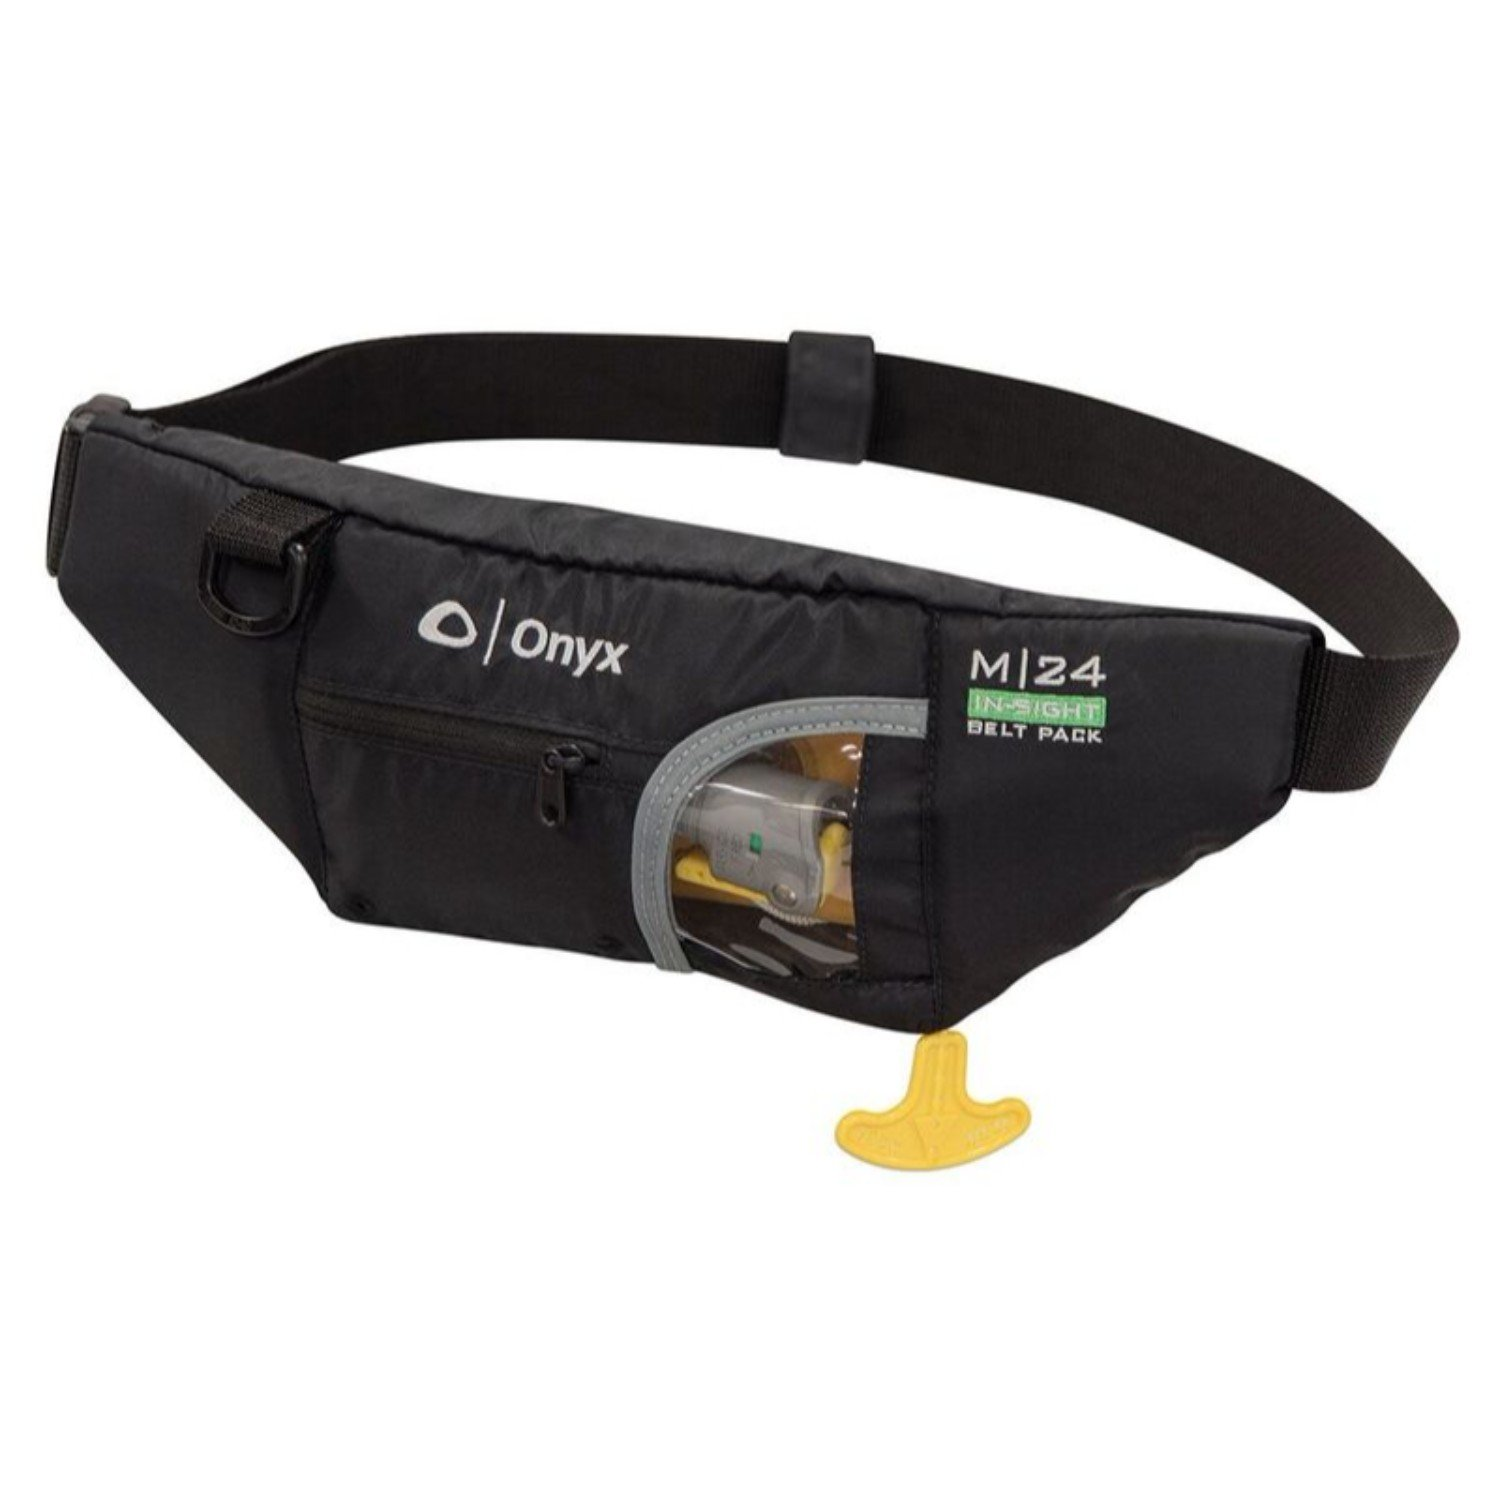 Onyx 130200-700-004-16 M-24 in-Sight Manual Inflatable Belt Pack, Adult, Black by Onyx